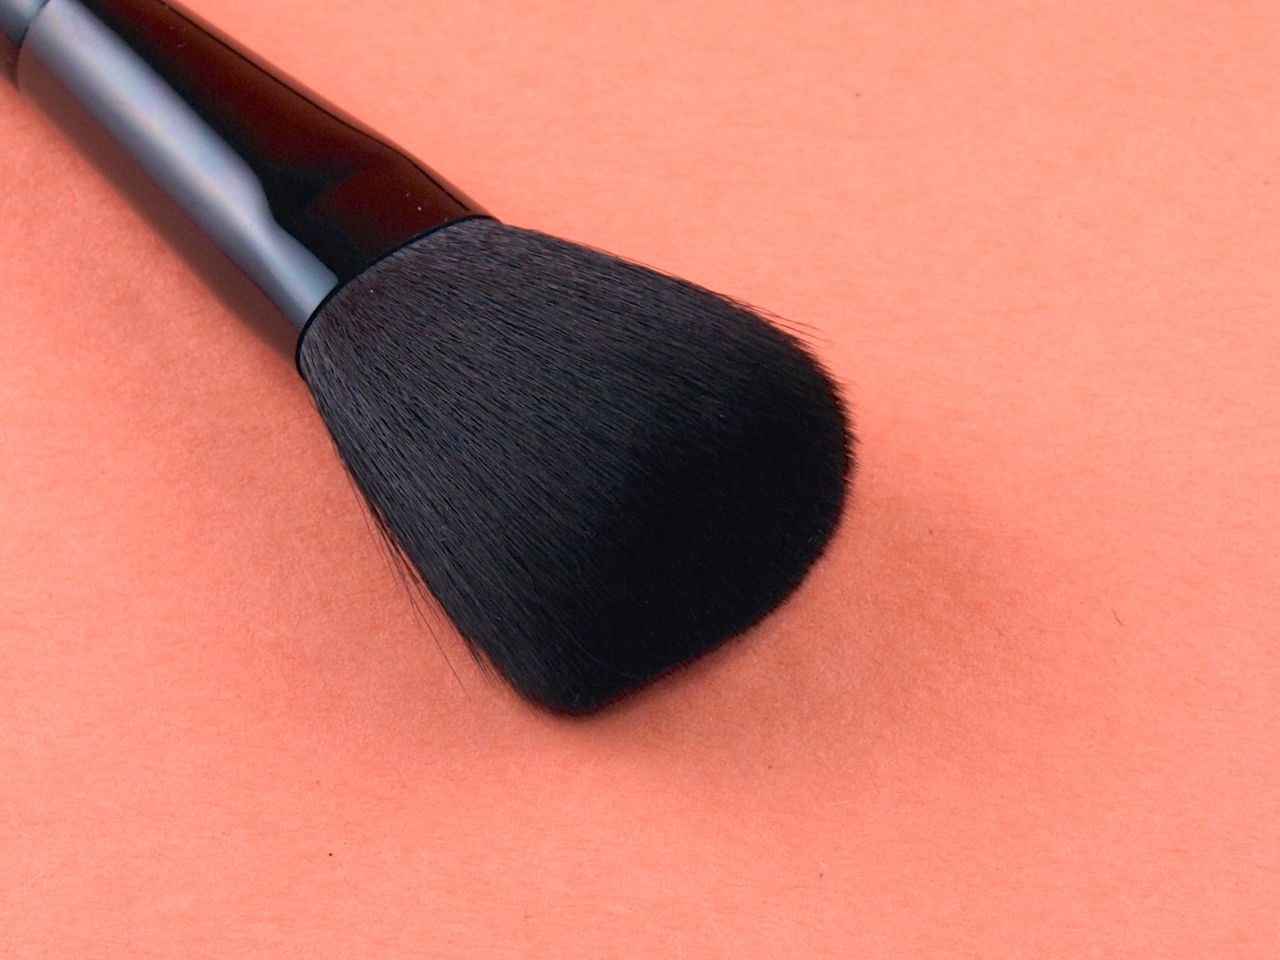 Tweezerman Brush IQ Makeup Brush Review